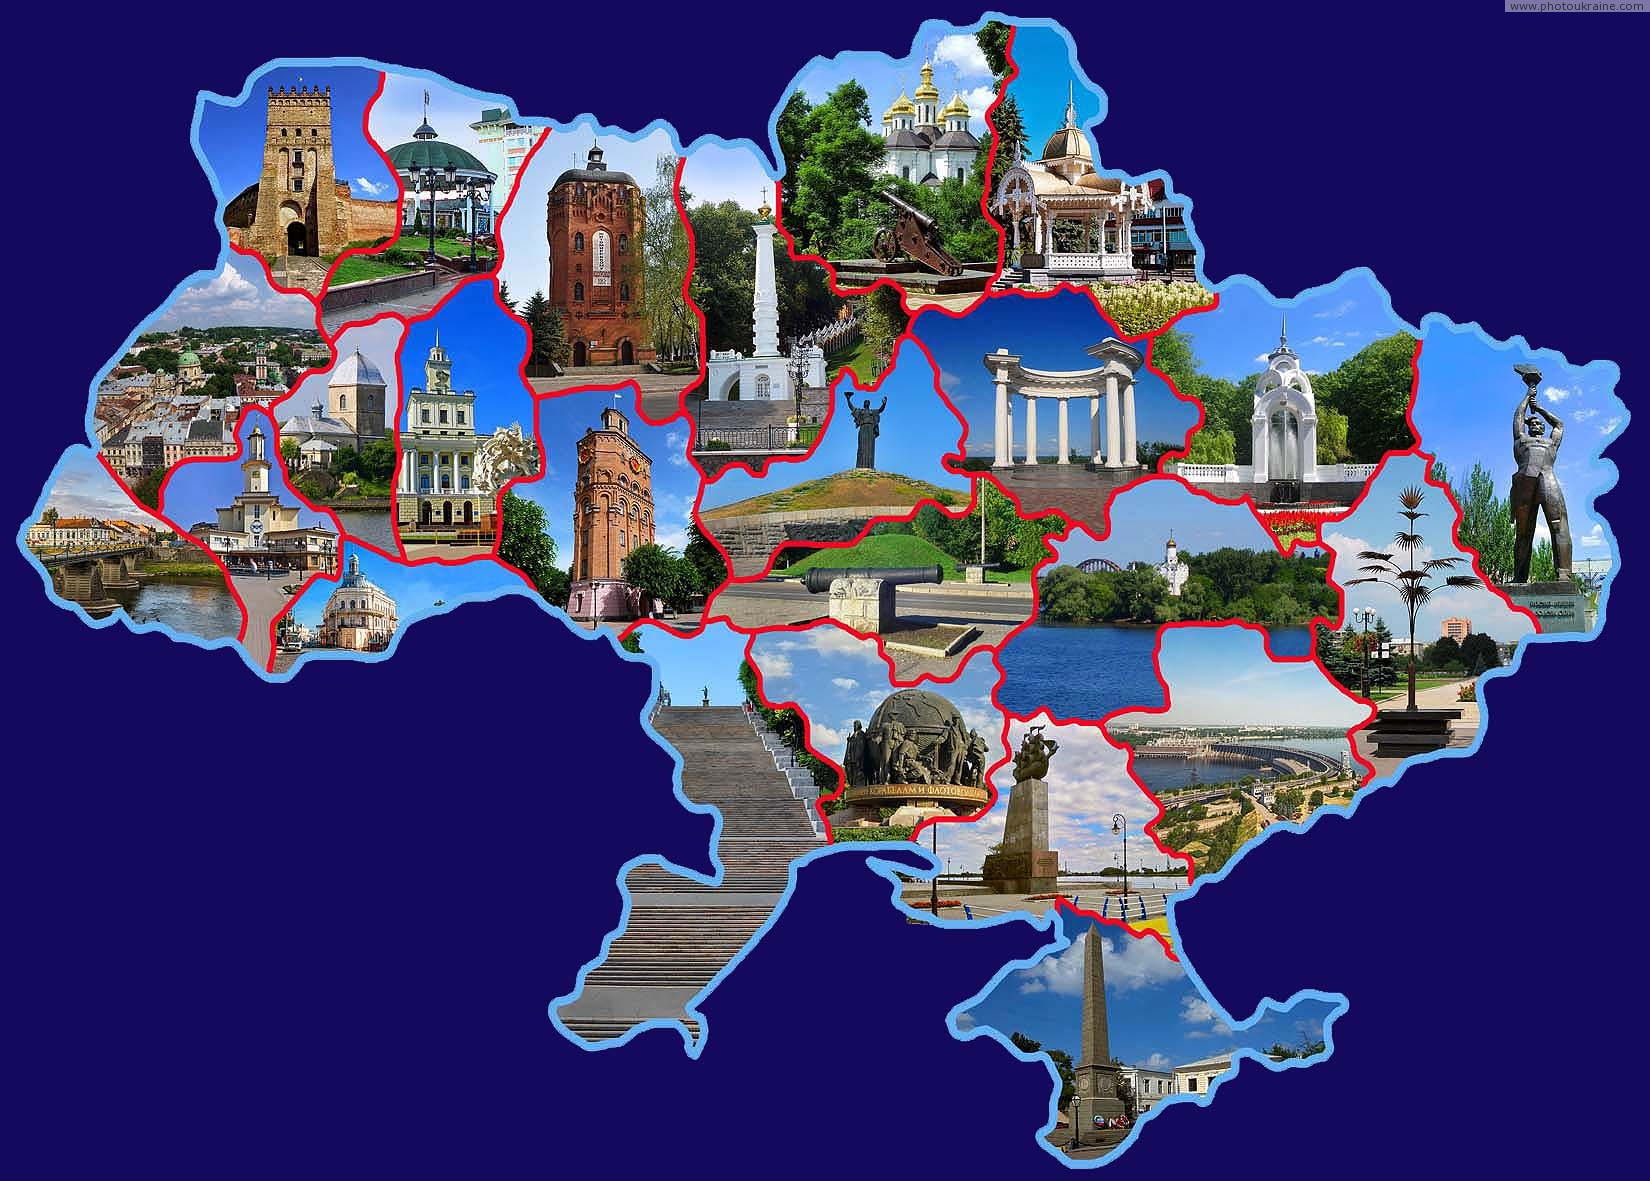 Symbols of the centers of the administrative regions of Ukraine